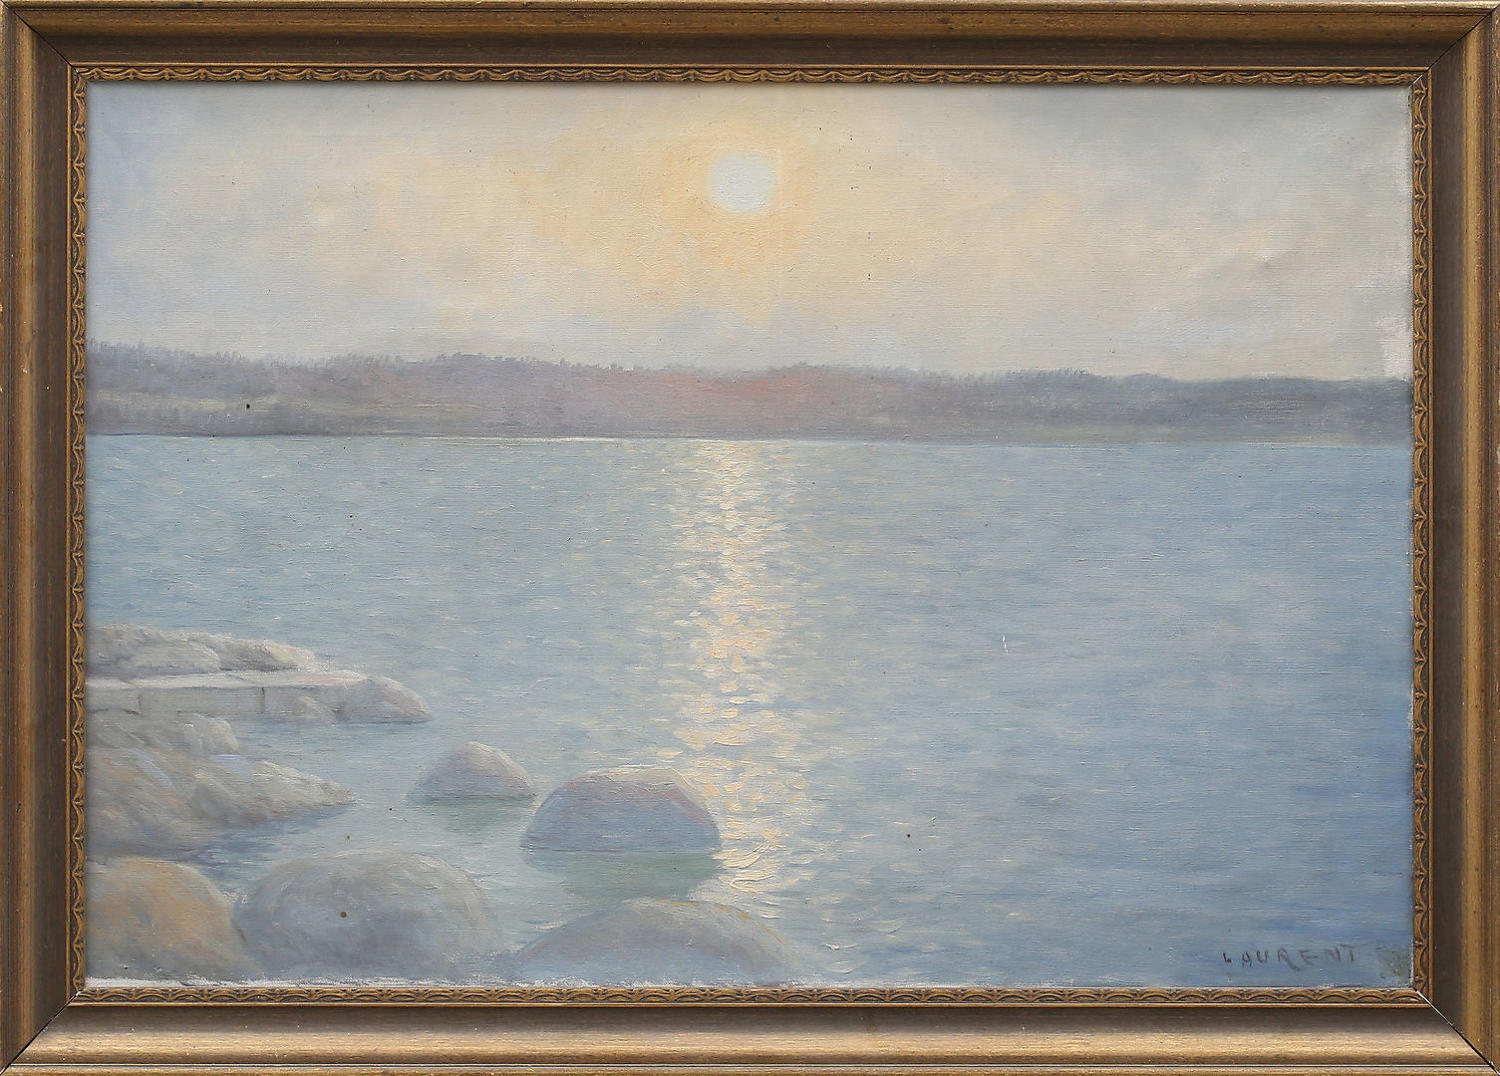 Unknown artist, sunset over water